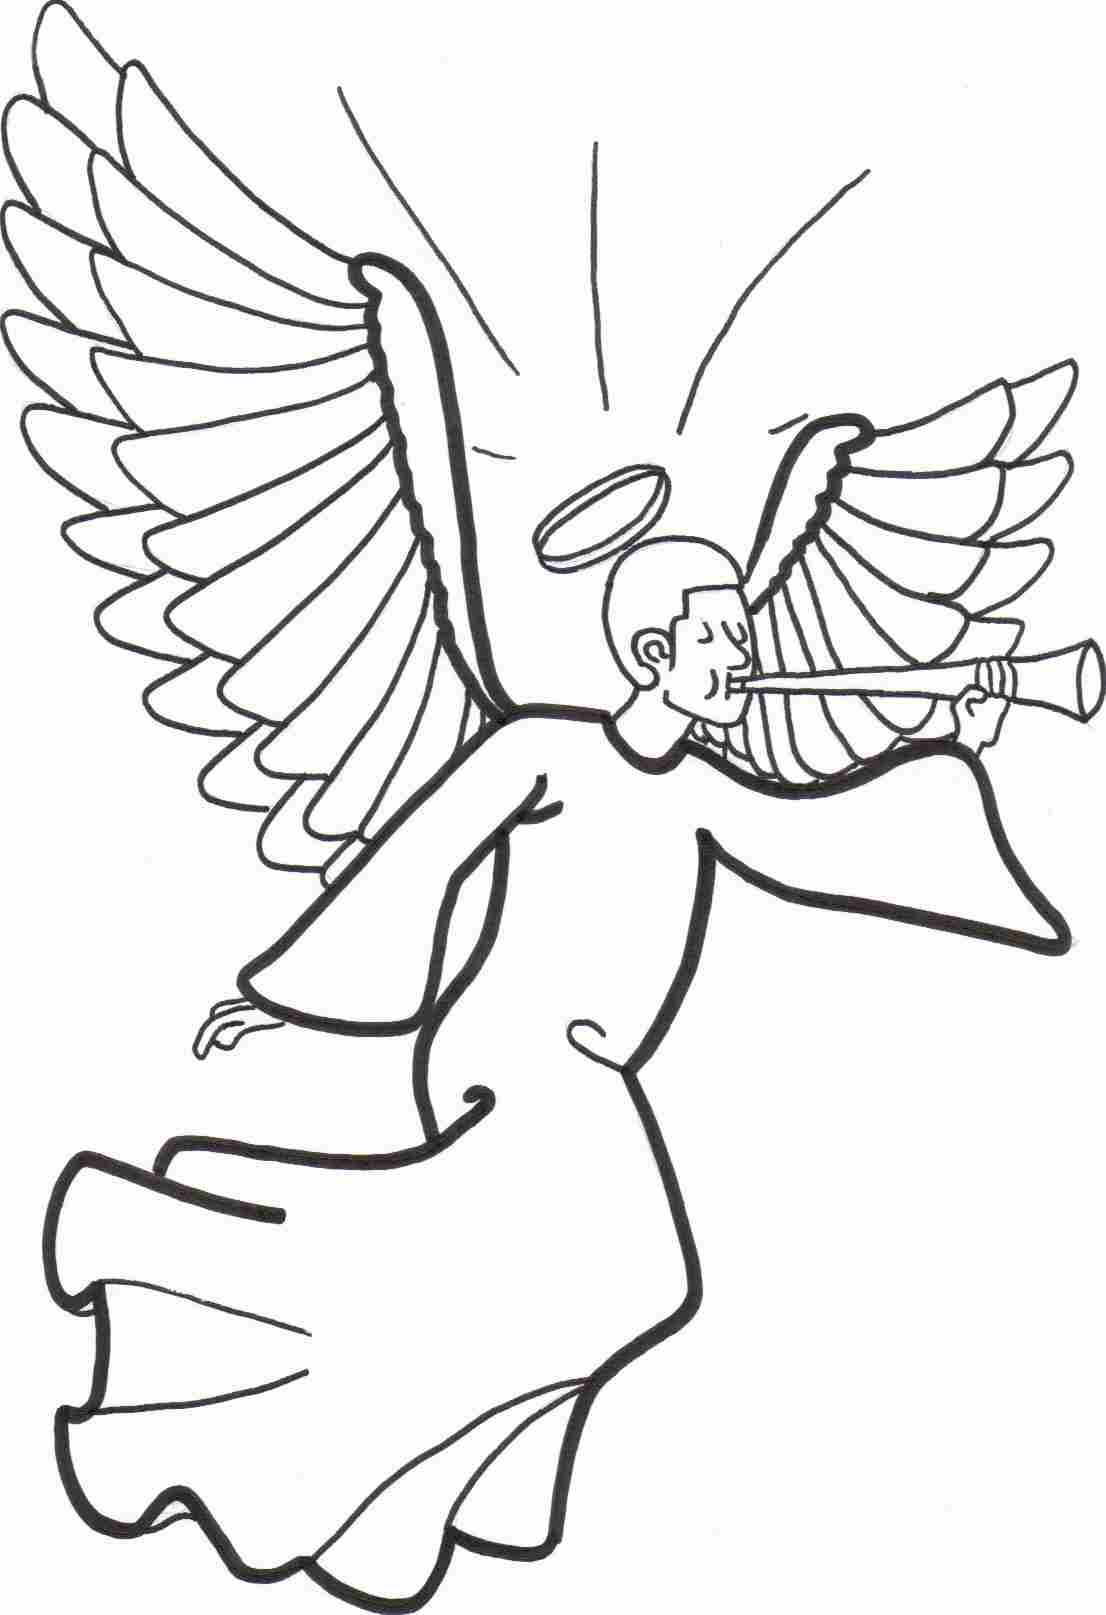 Uncategorized Guardian Angel Coloring Page free printable angel coloring pages for kids preschool